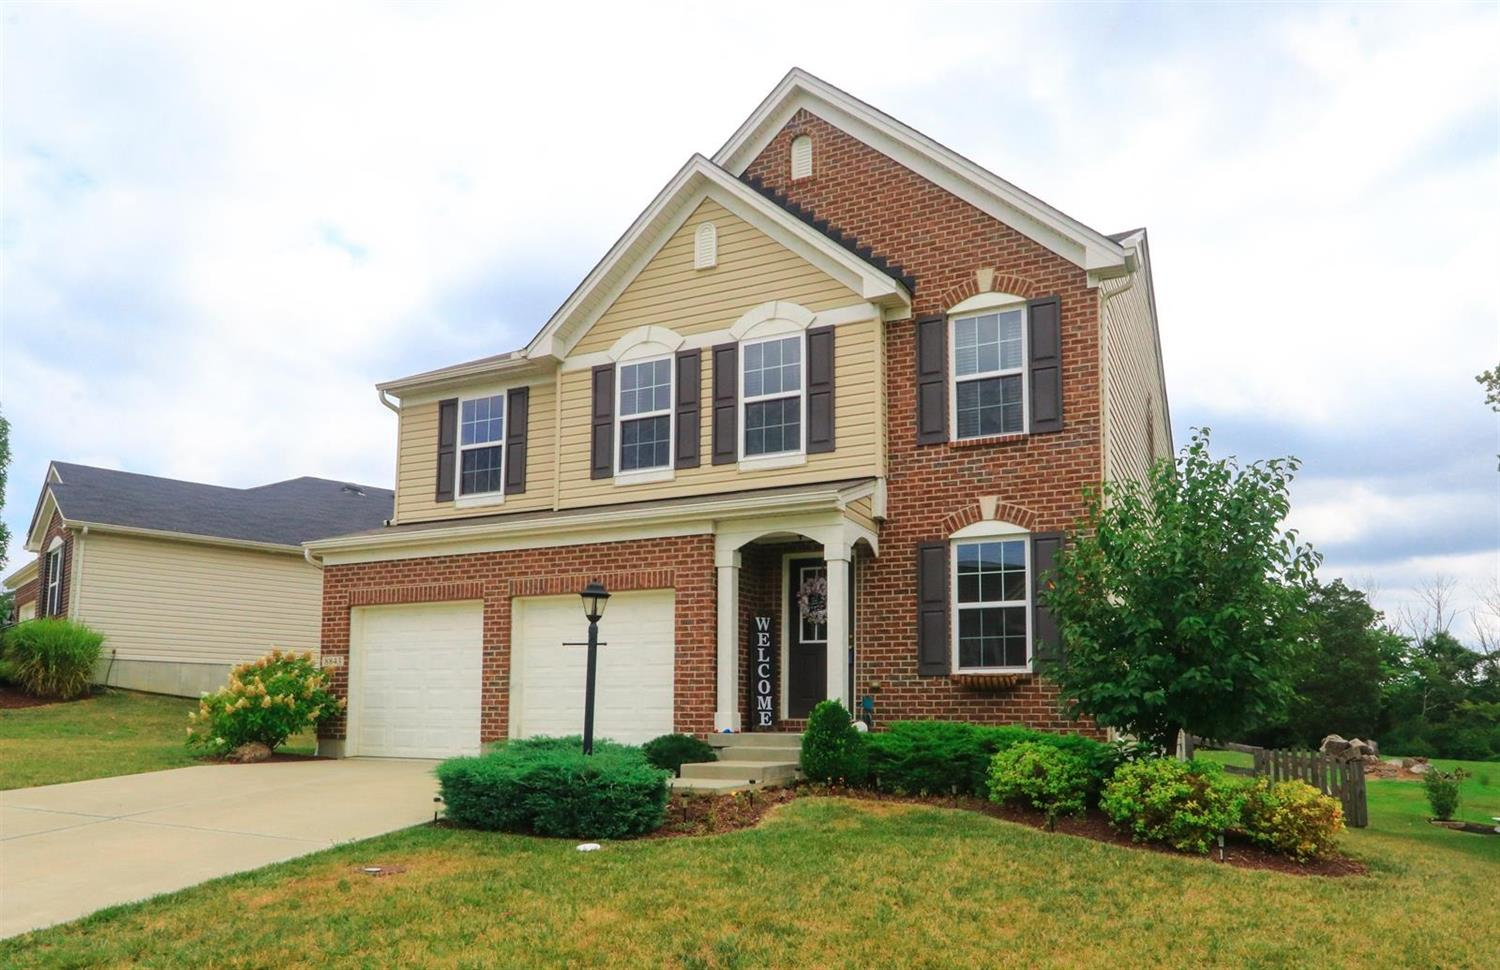 8843 Bluejay View Dr Whitewater Twp OH